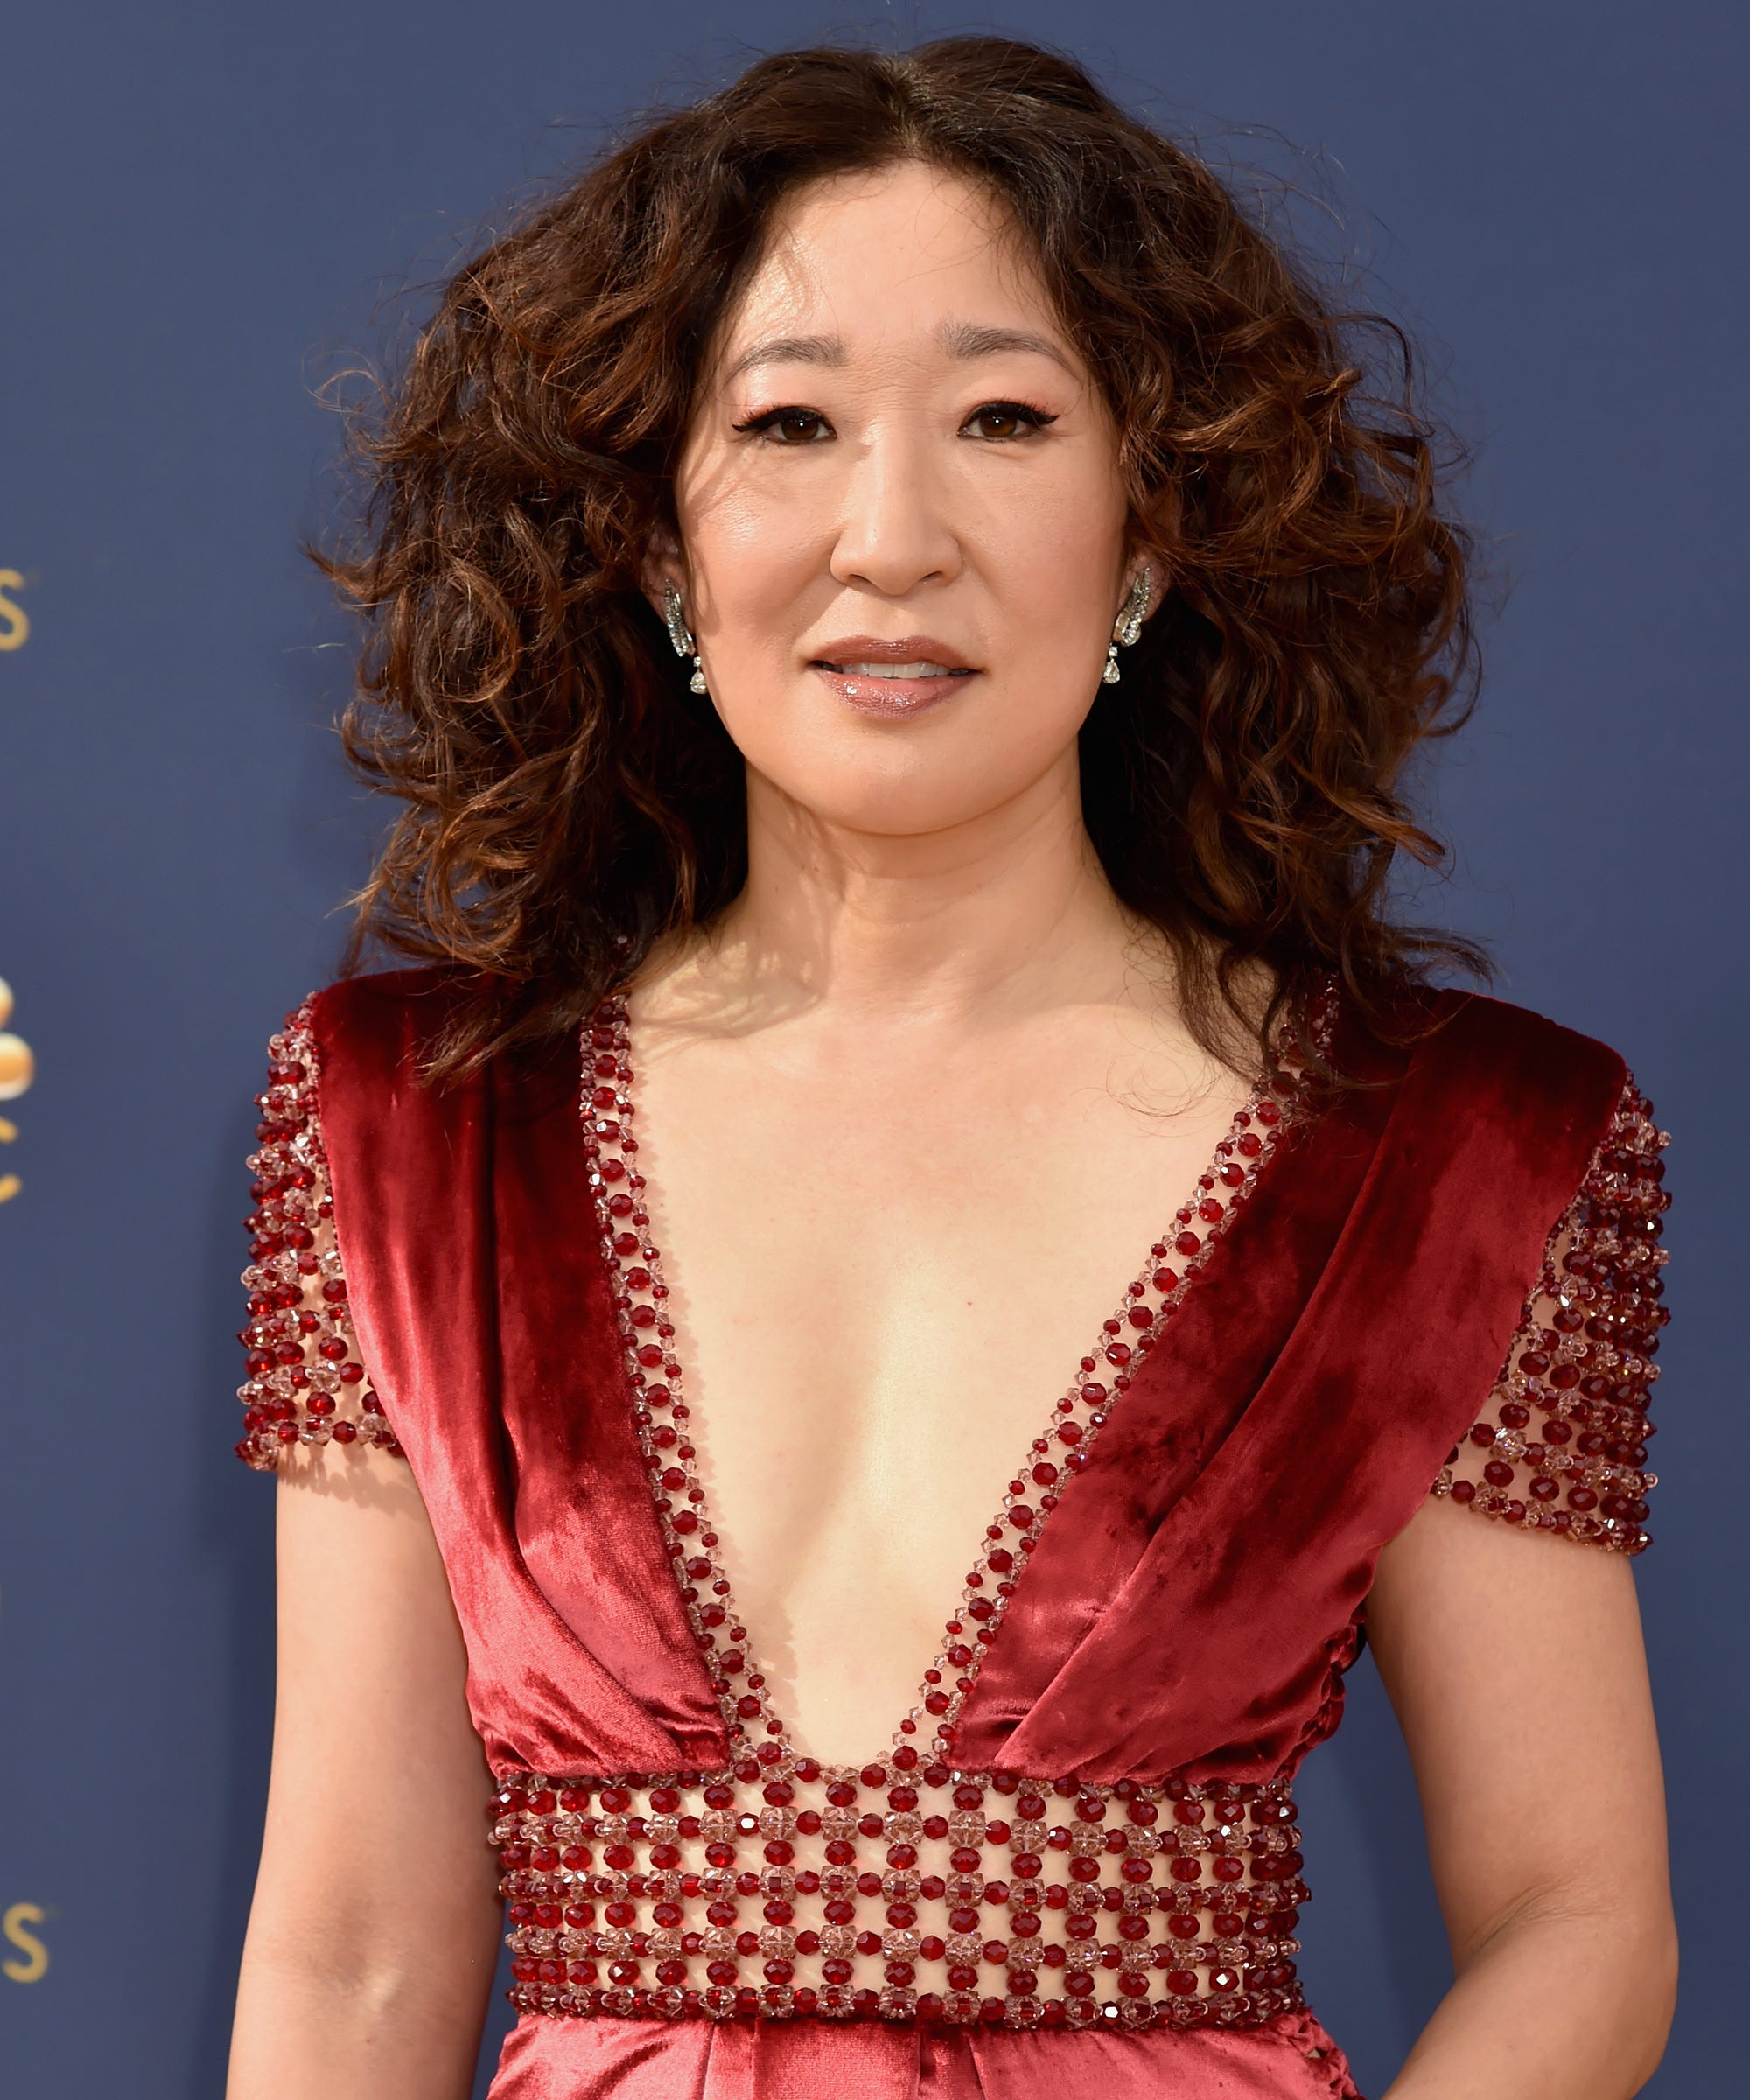 Sandra Oh nudes (97 foto and video), Sexy, Leaked, Twitter, cameltoe 2006